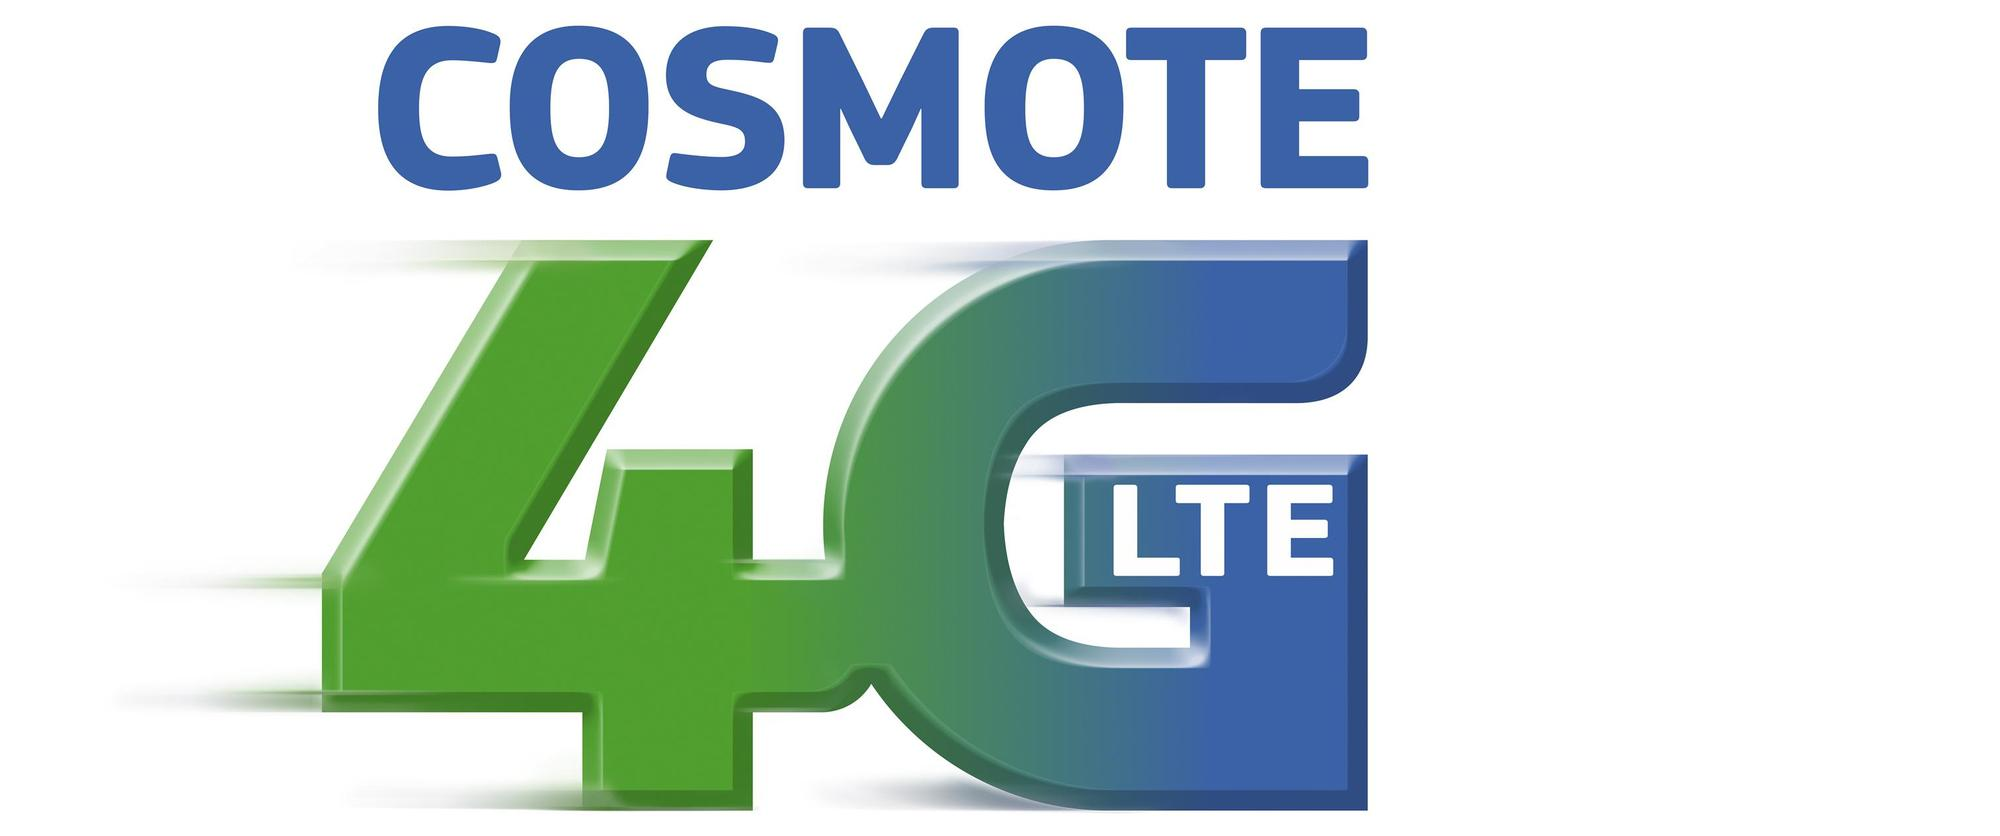 COSMOTE 4G